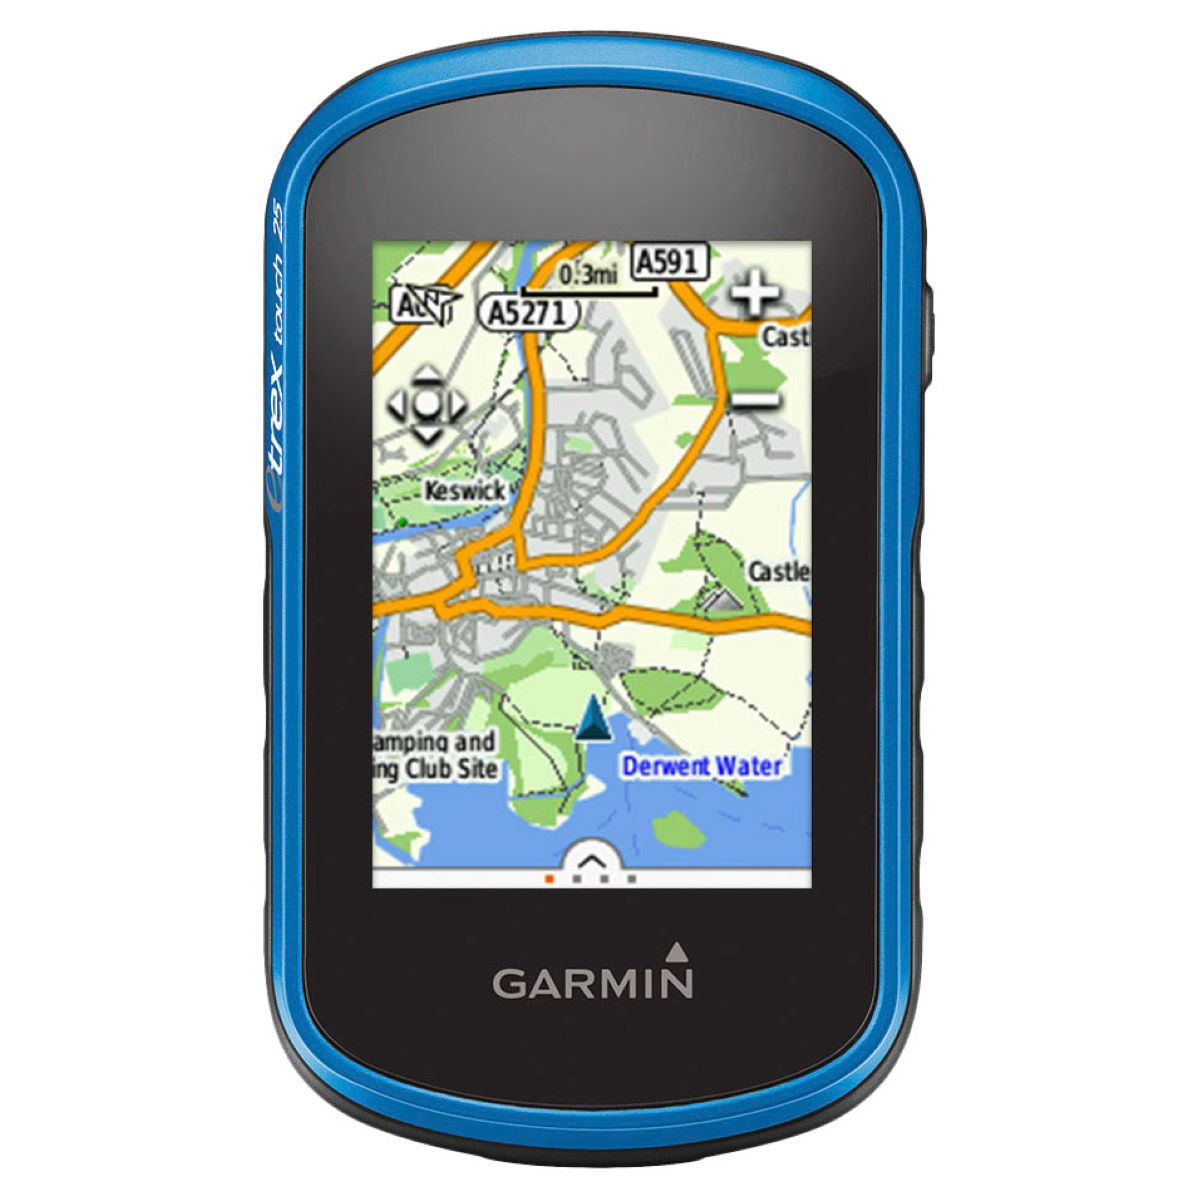 Garmin Garmin eTrex Touch 25 Outdoor GPS   GPS Units